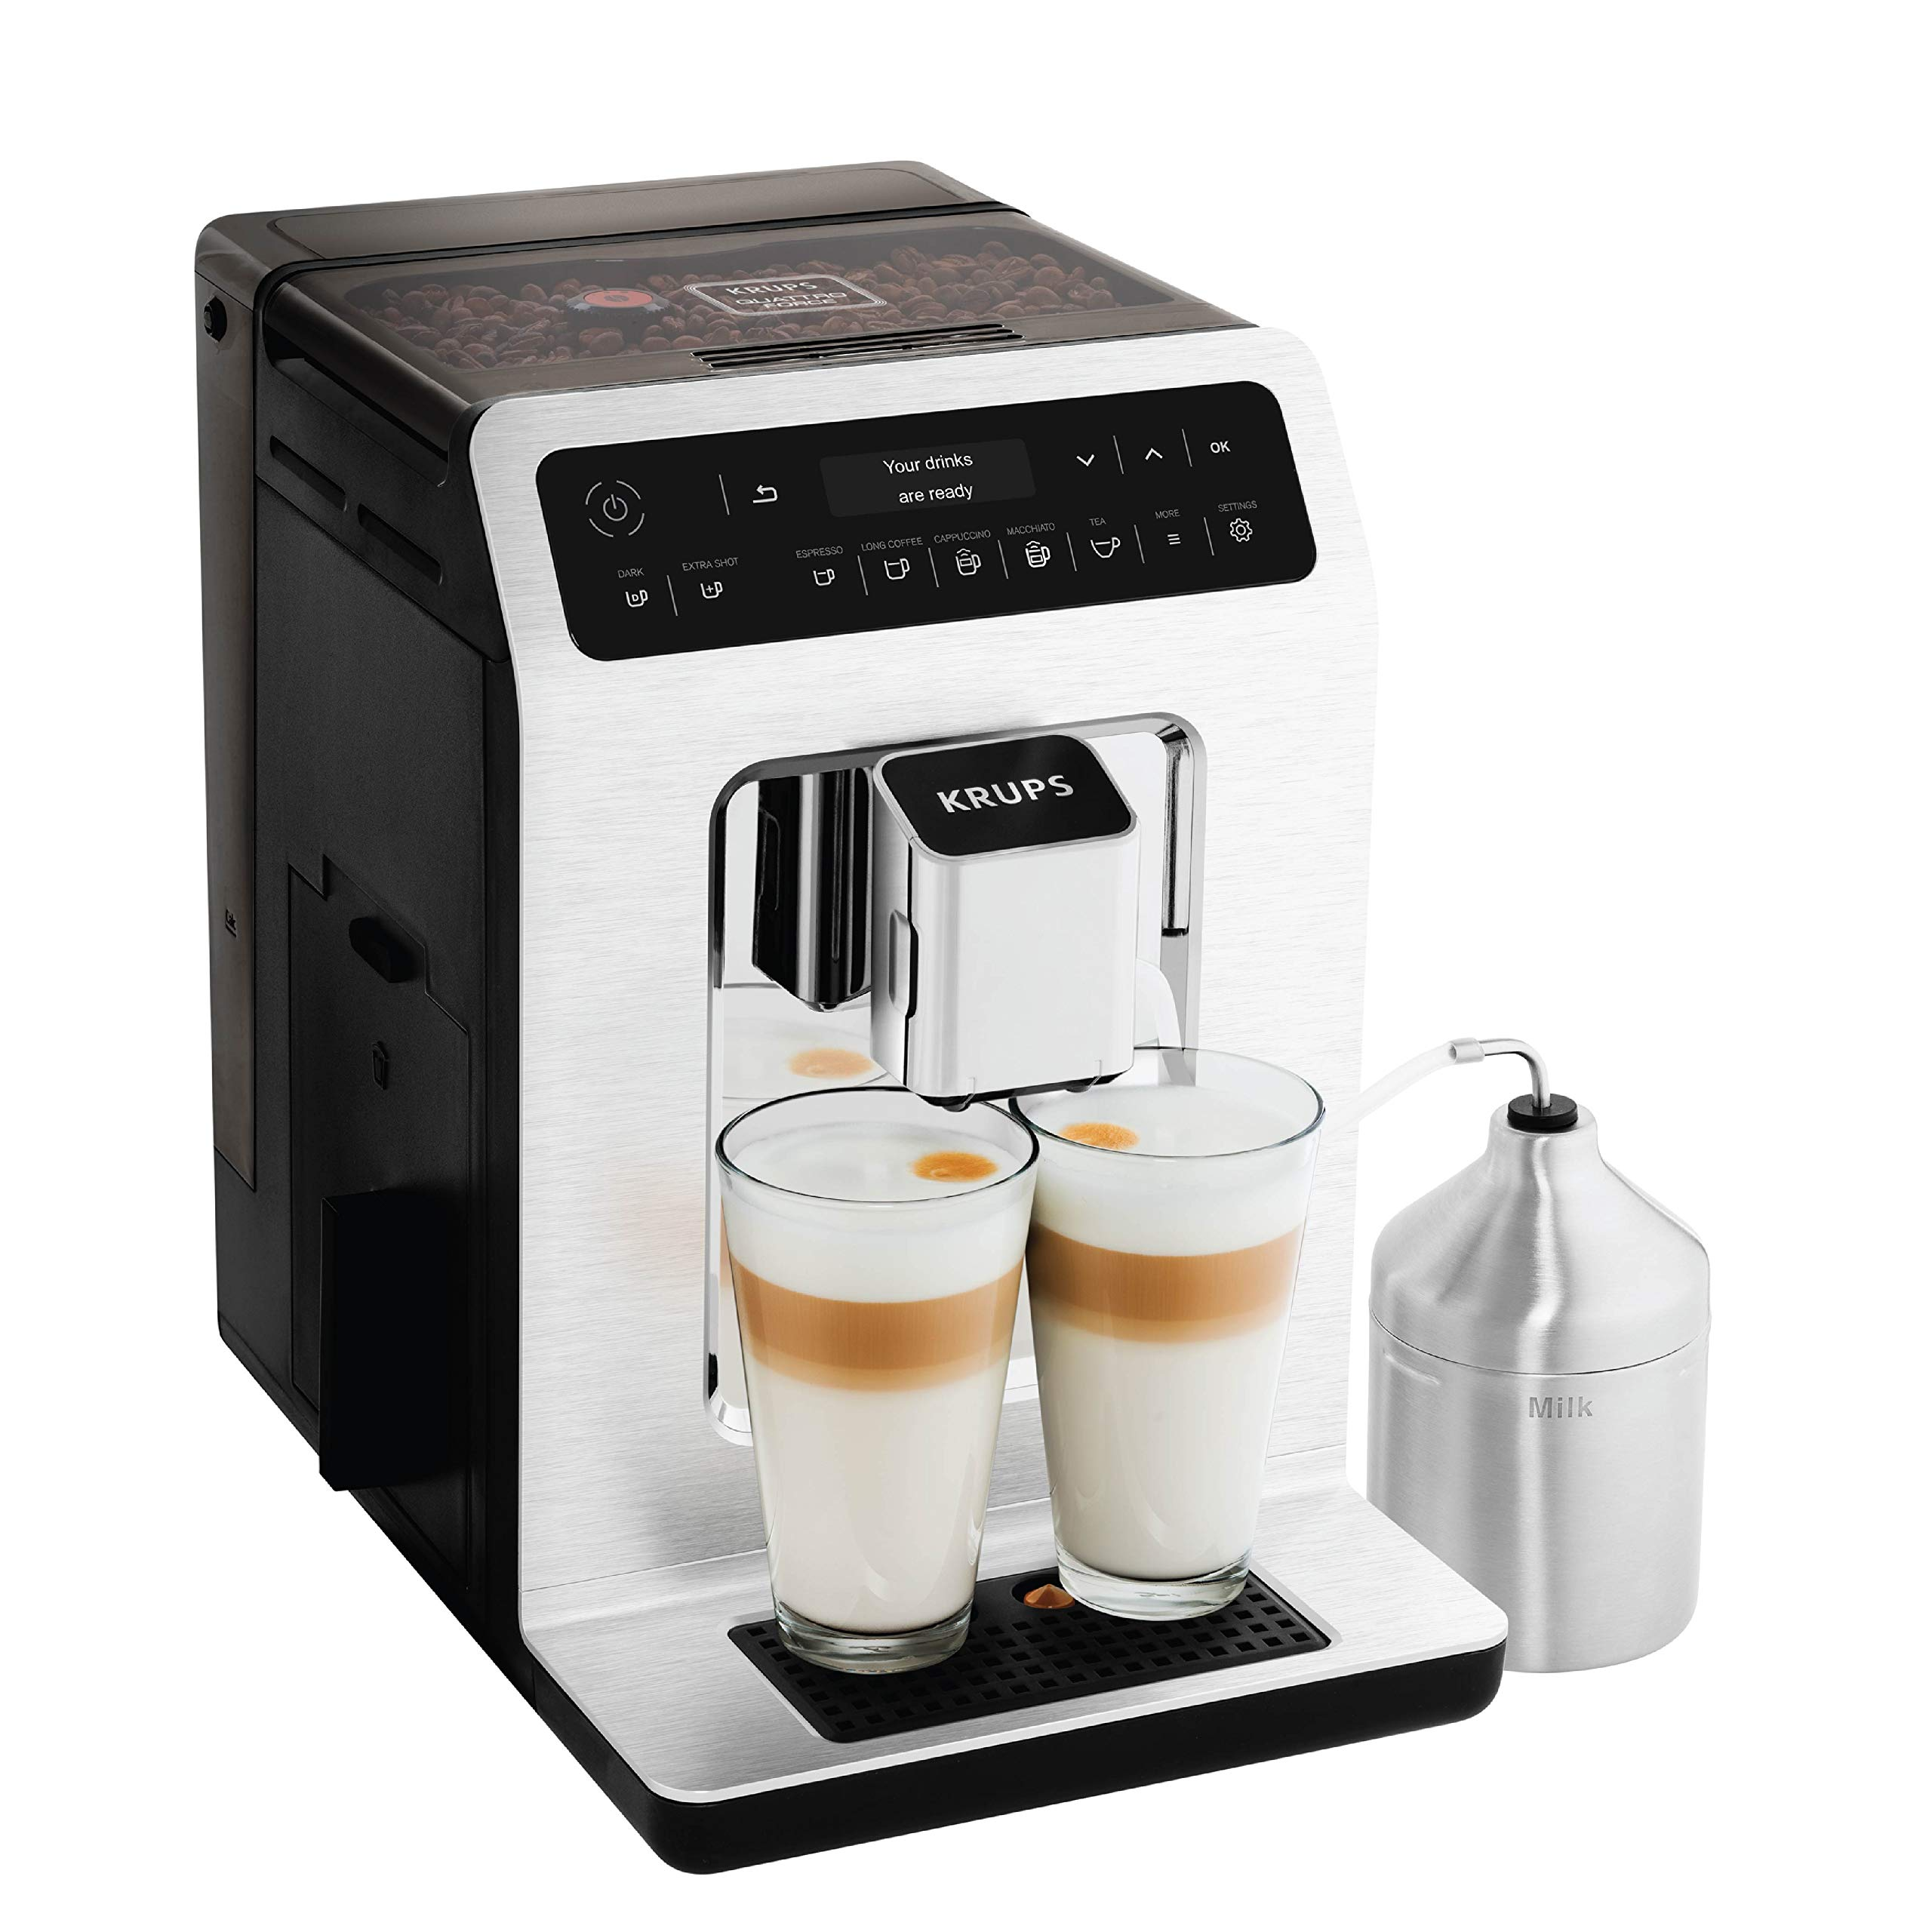 KRUPS EA89 Deluxe One-Touch Super Automatic Espresso and Cappuccino Machine, 15 Fully Customizable Drinks,Gray by KRUPS